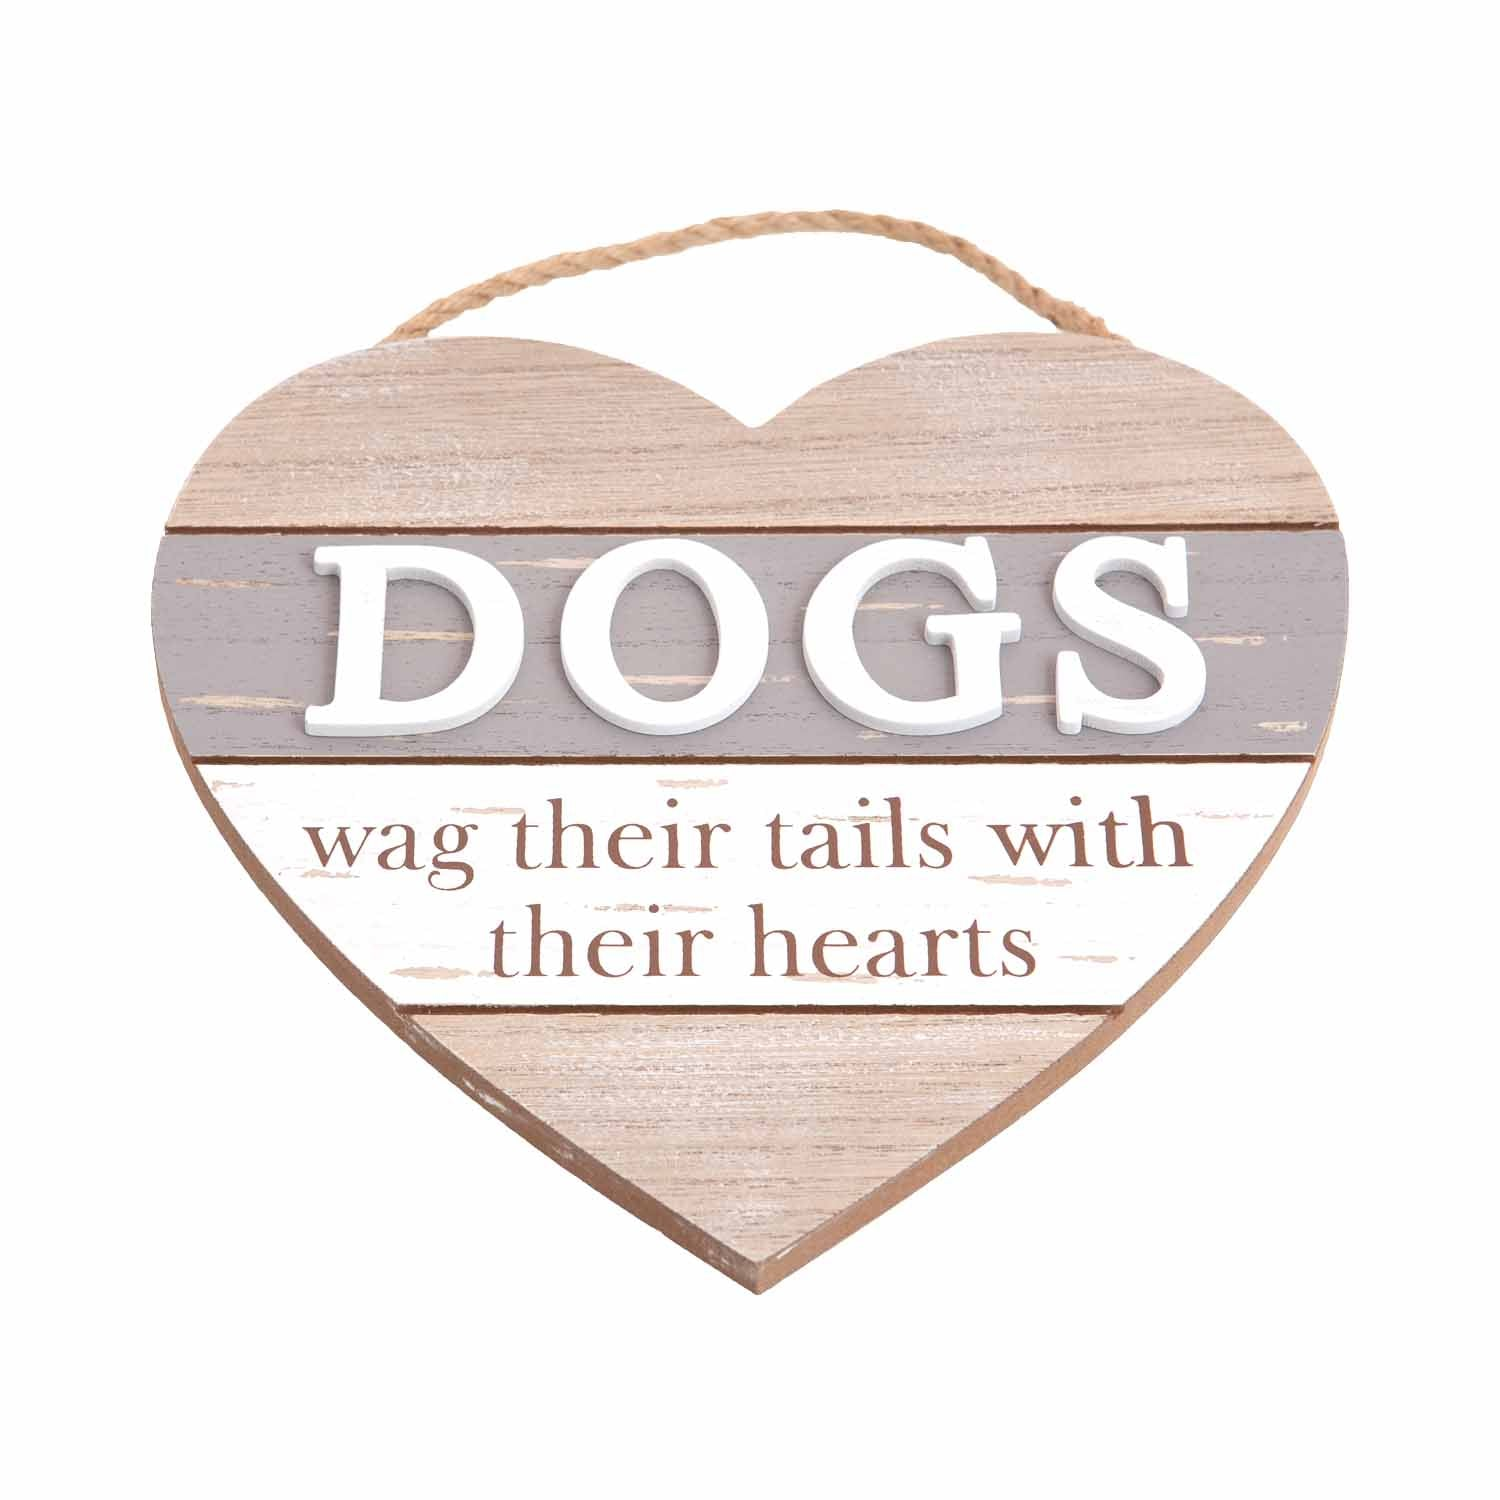 Dog Lover Gifts available at Dog Krazy Gifts – Dogs Wag Their Tails With Their Hearts Boardwalk Sign, Just Part Of Our Collection Of Signs Available At www.dogkrazygifts.co.uk